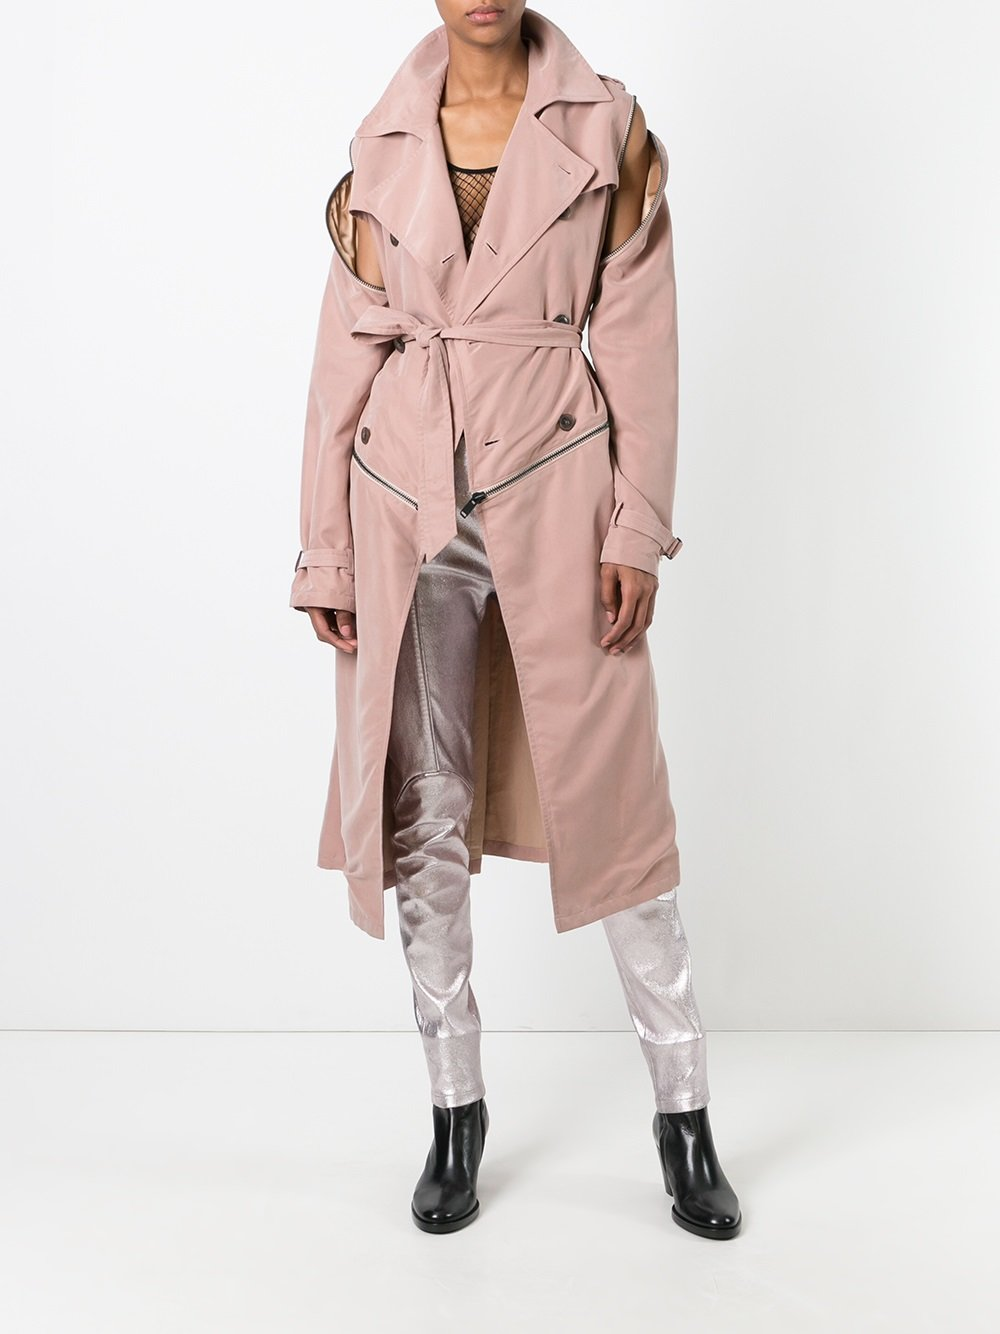 A.F.Vandevorst 'Moment' Trenchcoat - Farfetch